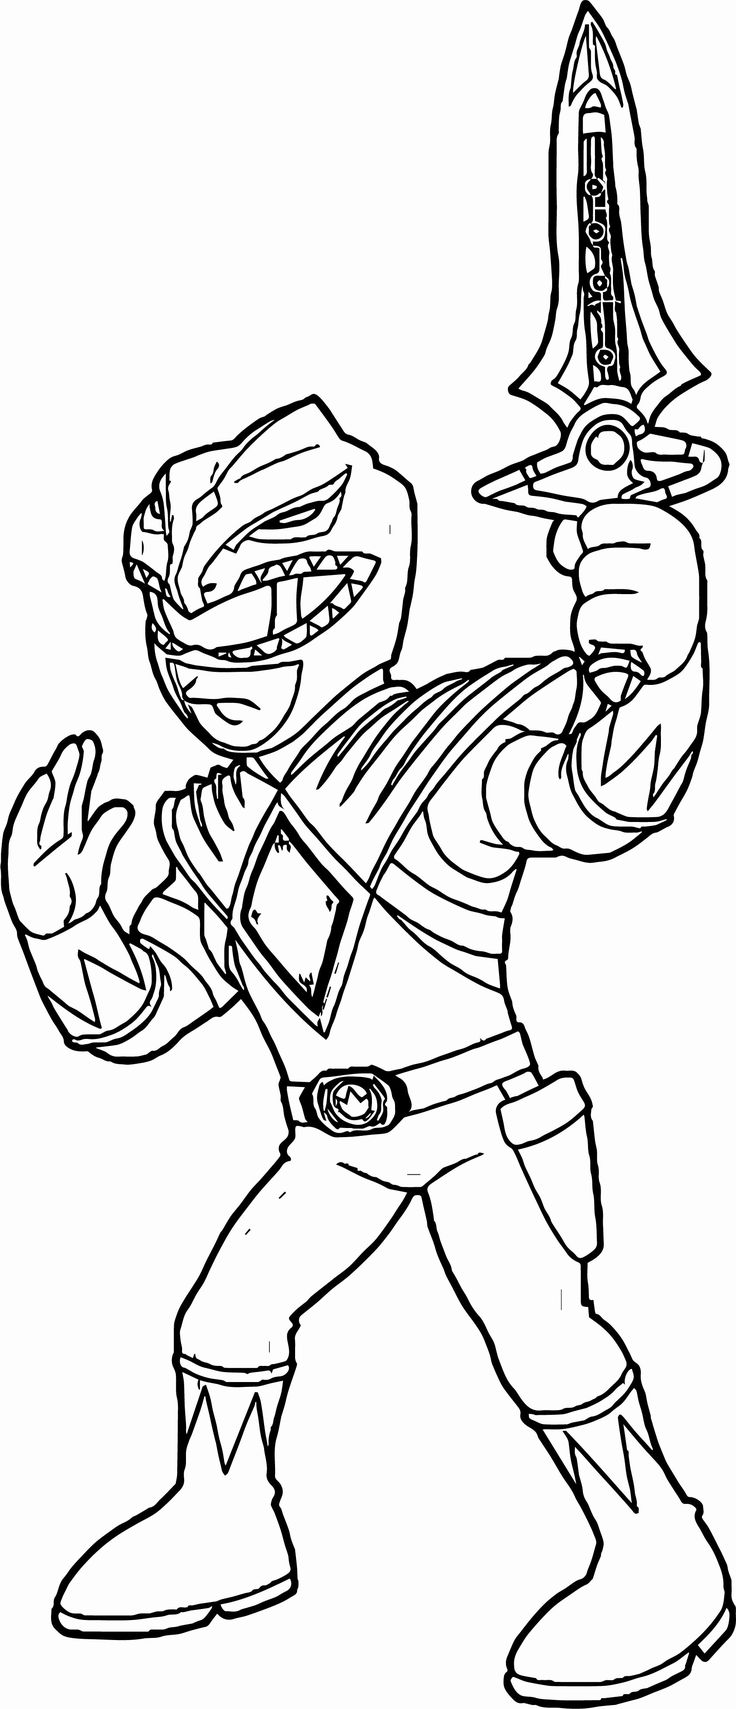 Power Ranger Coloring Page Awesome Power Rangers Green Ranger Coloring Page Power Rangers Coloring Pages Dinosaur Coloring Pages Coloring Pages